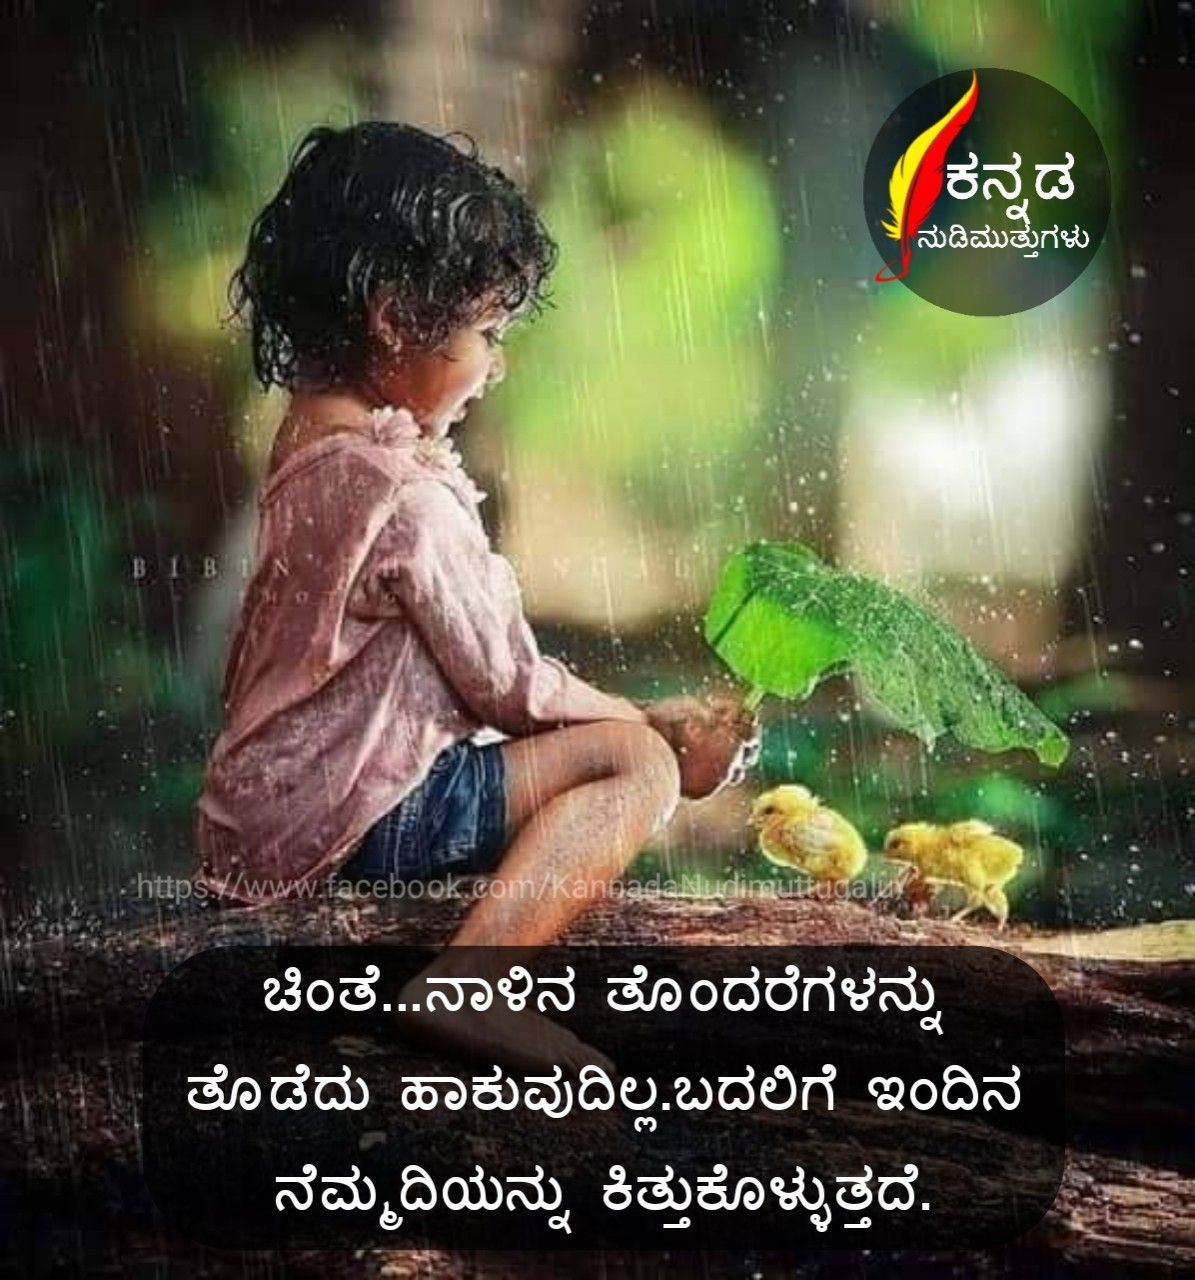 kannada quotes  Love quotes in kannada, Good morning image quotes